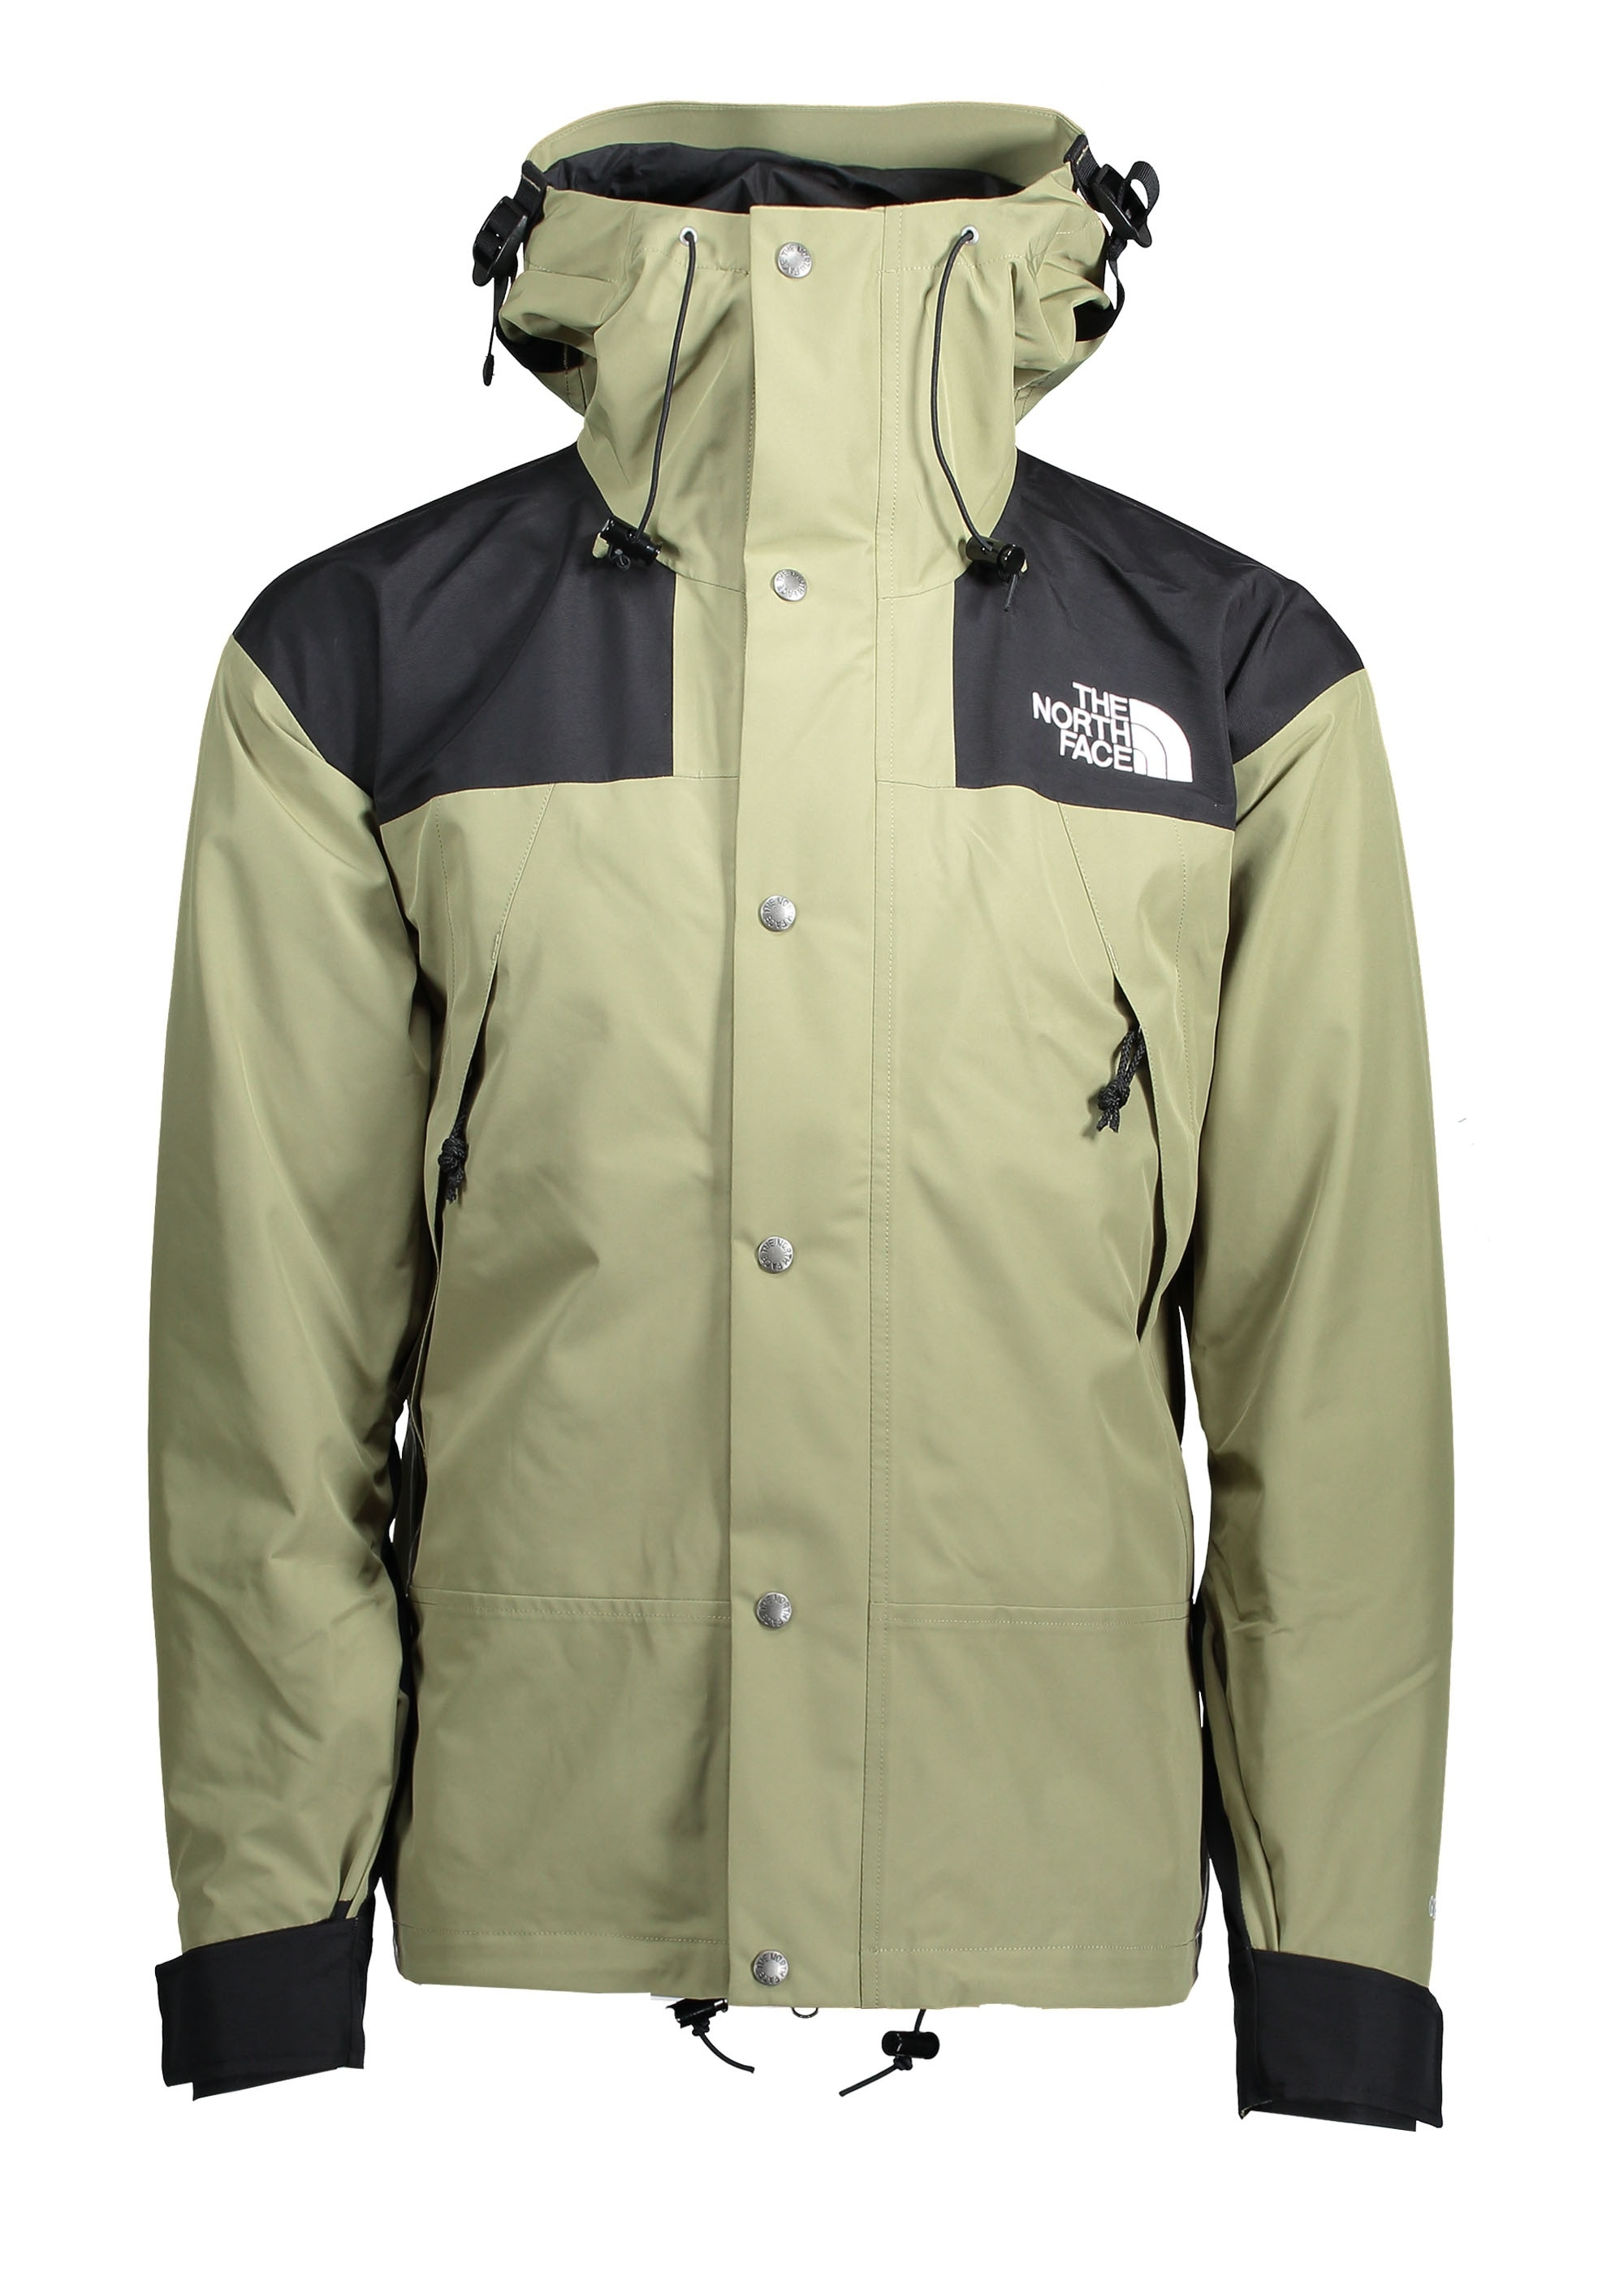 18604d60713e The North Face 1990 Mountain Jacket GTX - Tumbled Green - Triads ...